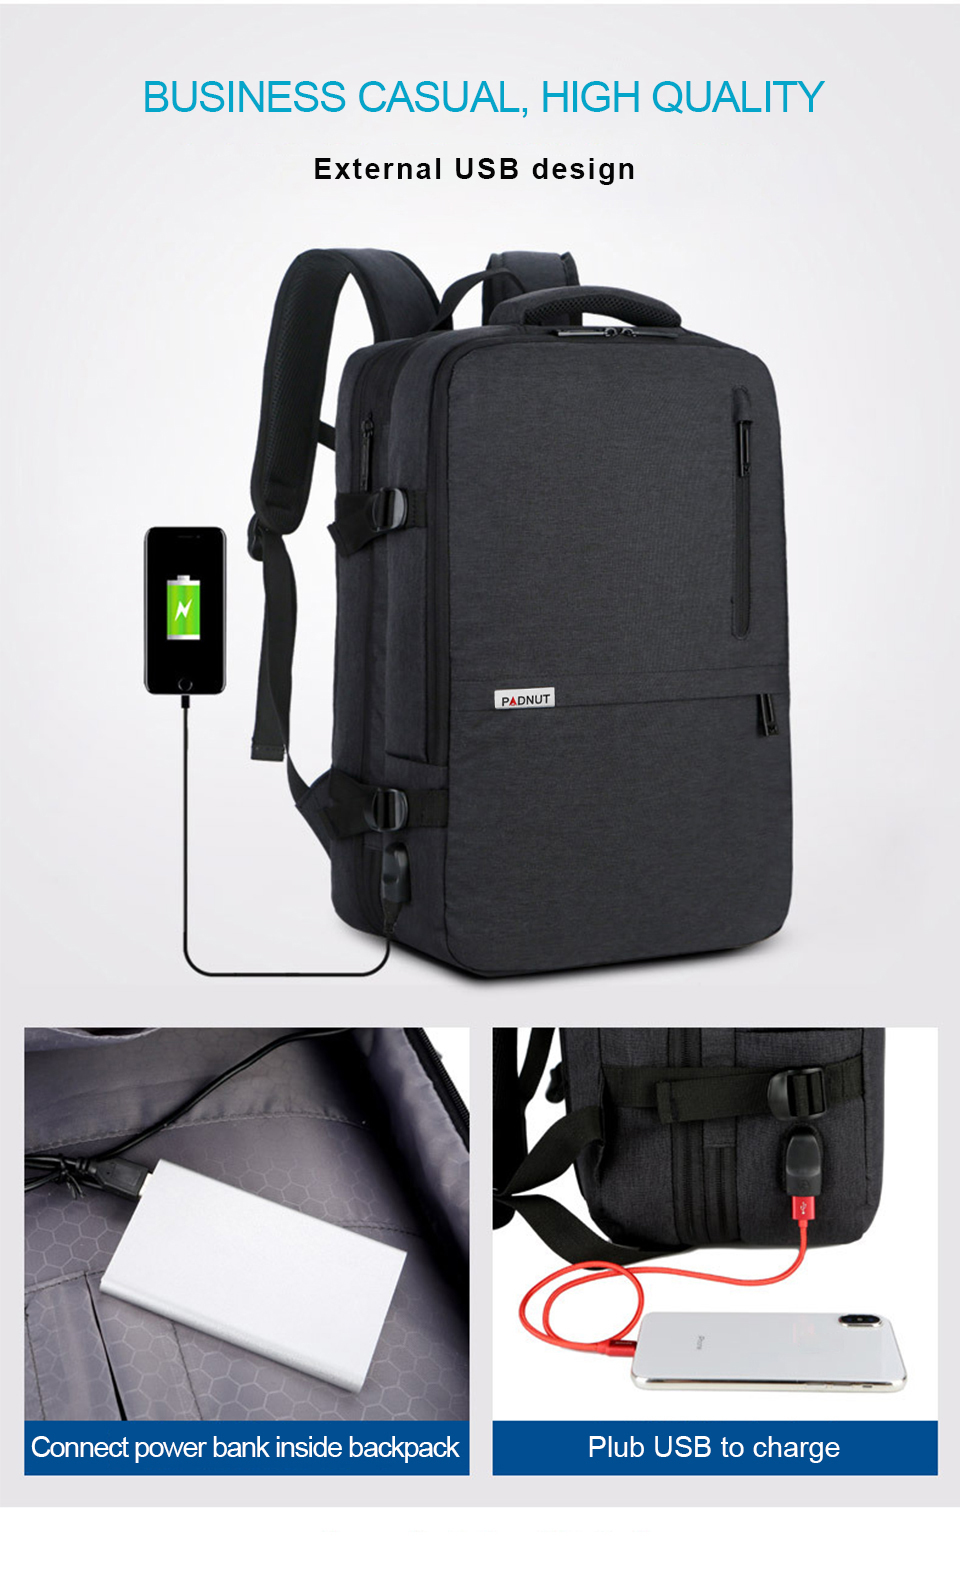 17''-Laptop-Backpack-Travel-Bag-Women-Men-Waterproof-75L-Large-Capacity-Bagpack-Anti-theft-Male-Female-Outdoor-15.6-Back-Packing_02